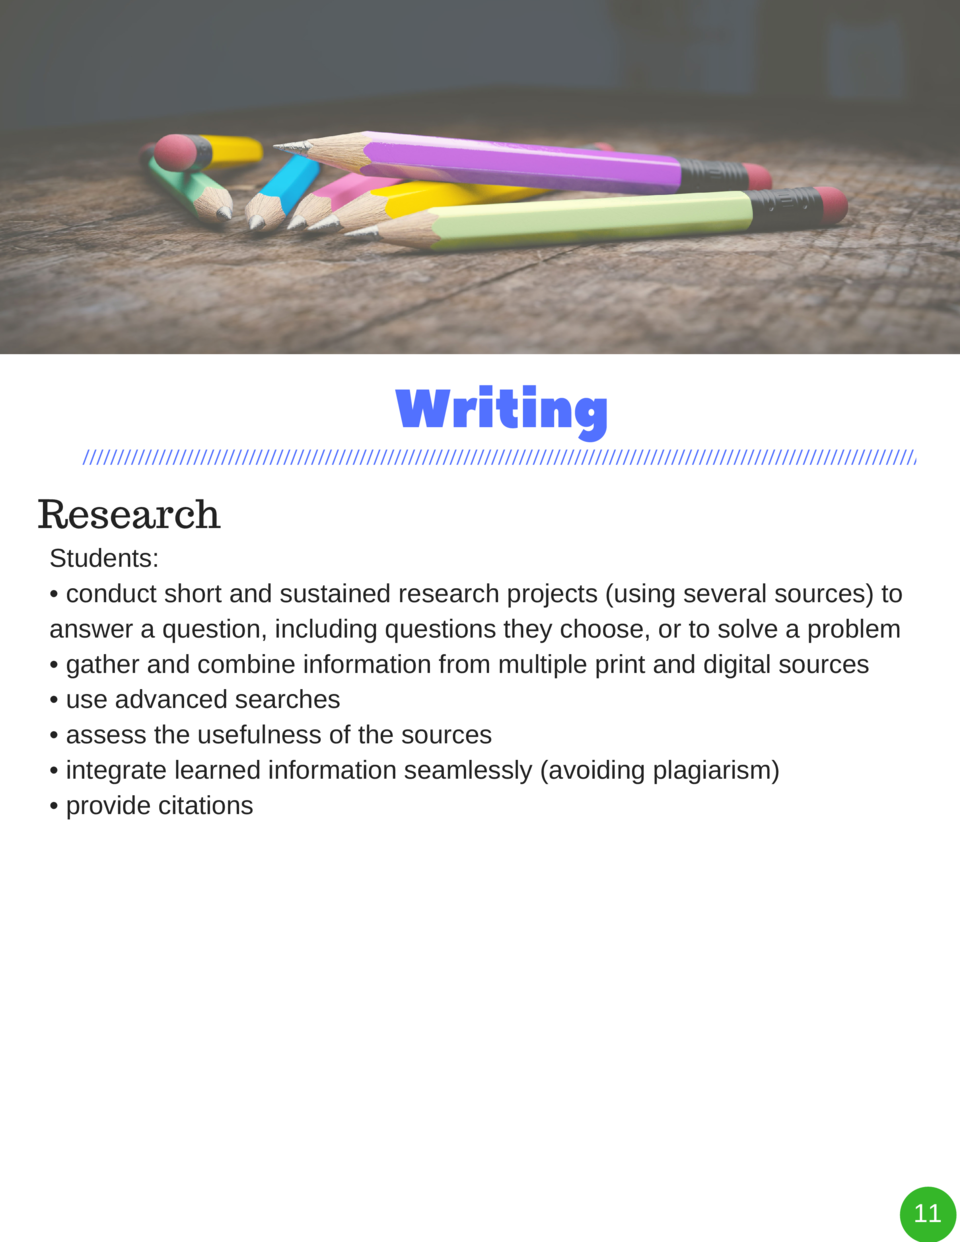 Writing Research Students      conduct short and sustained research projects  using several sources  to answer a question,...